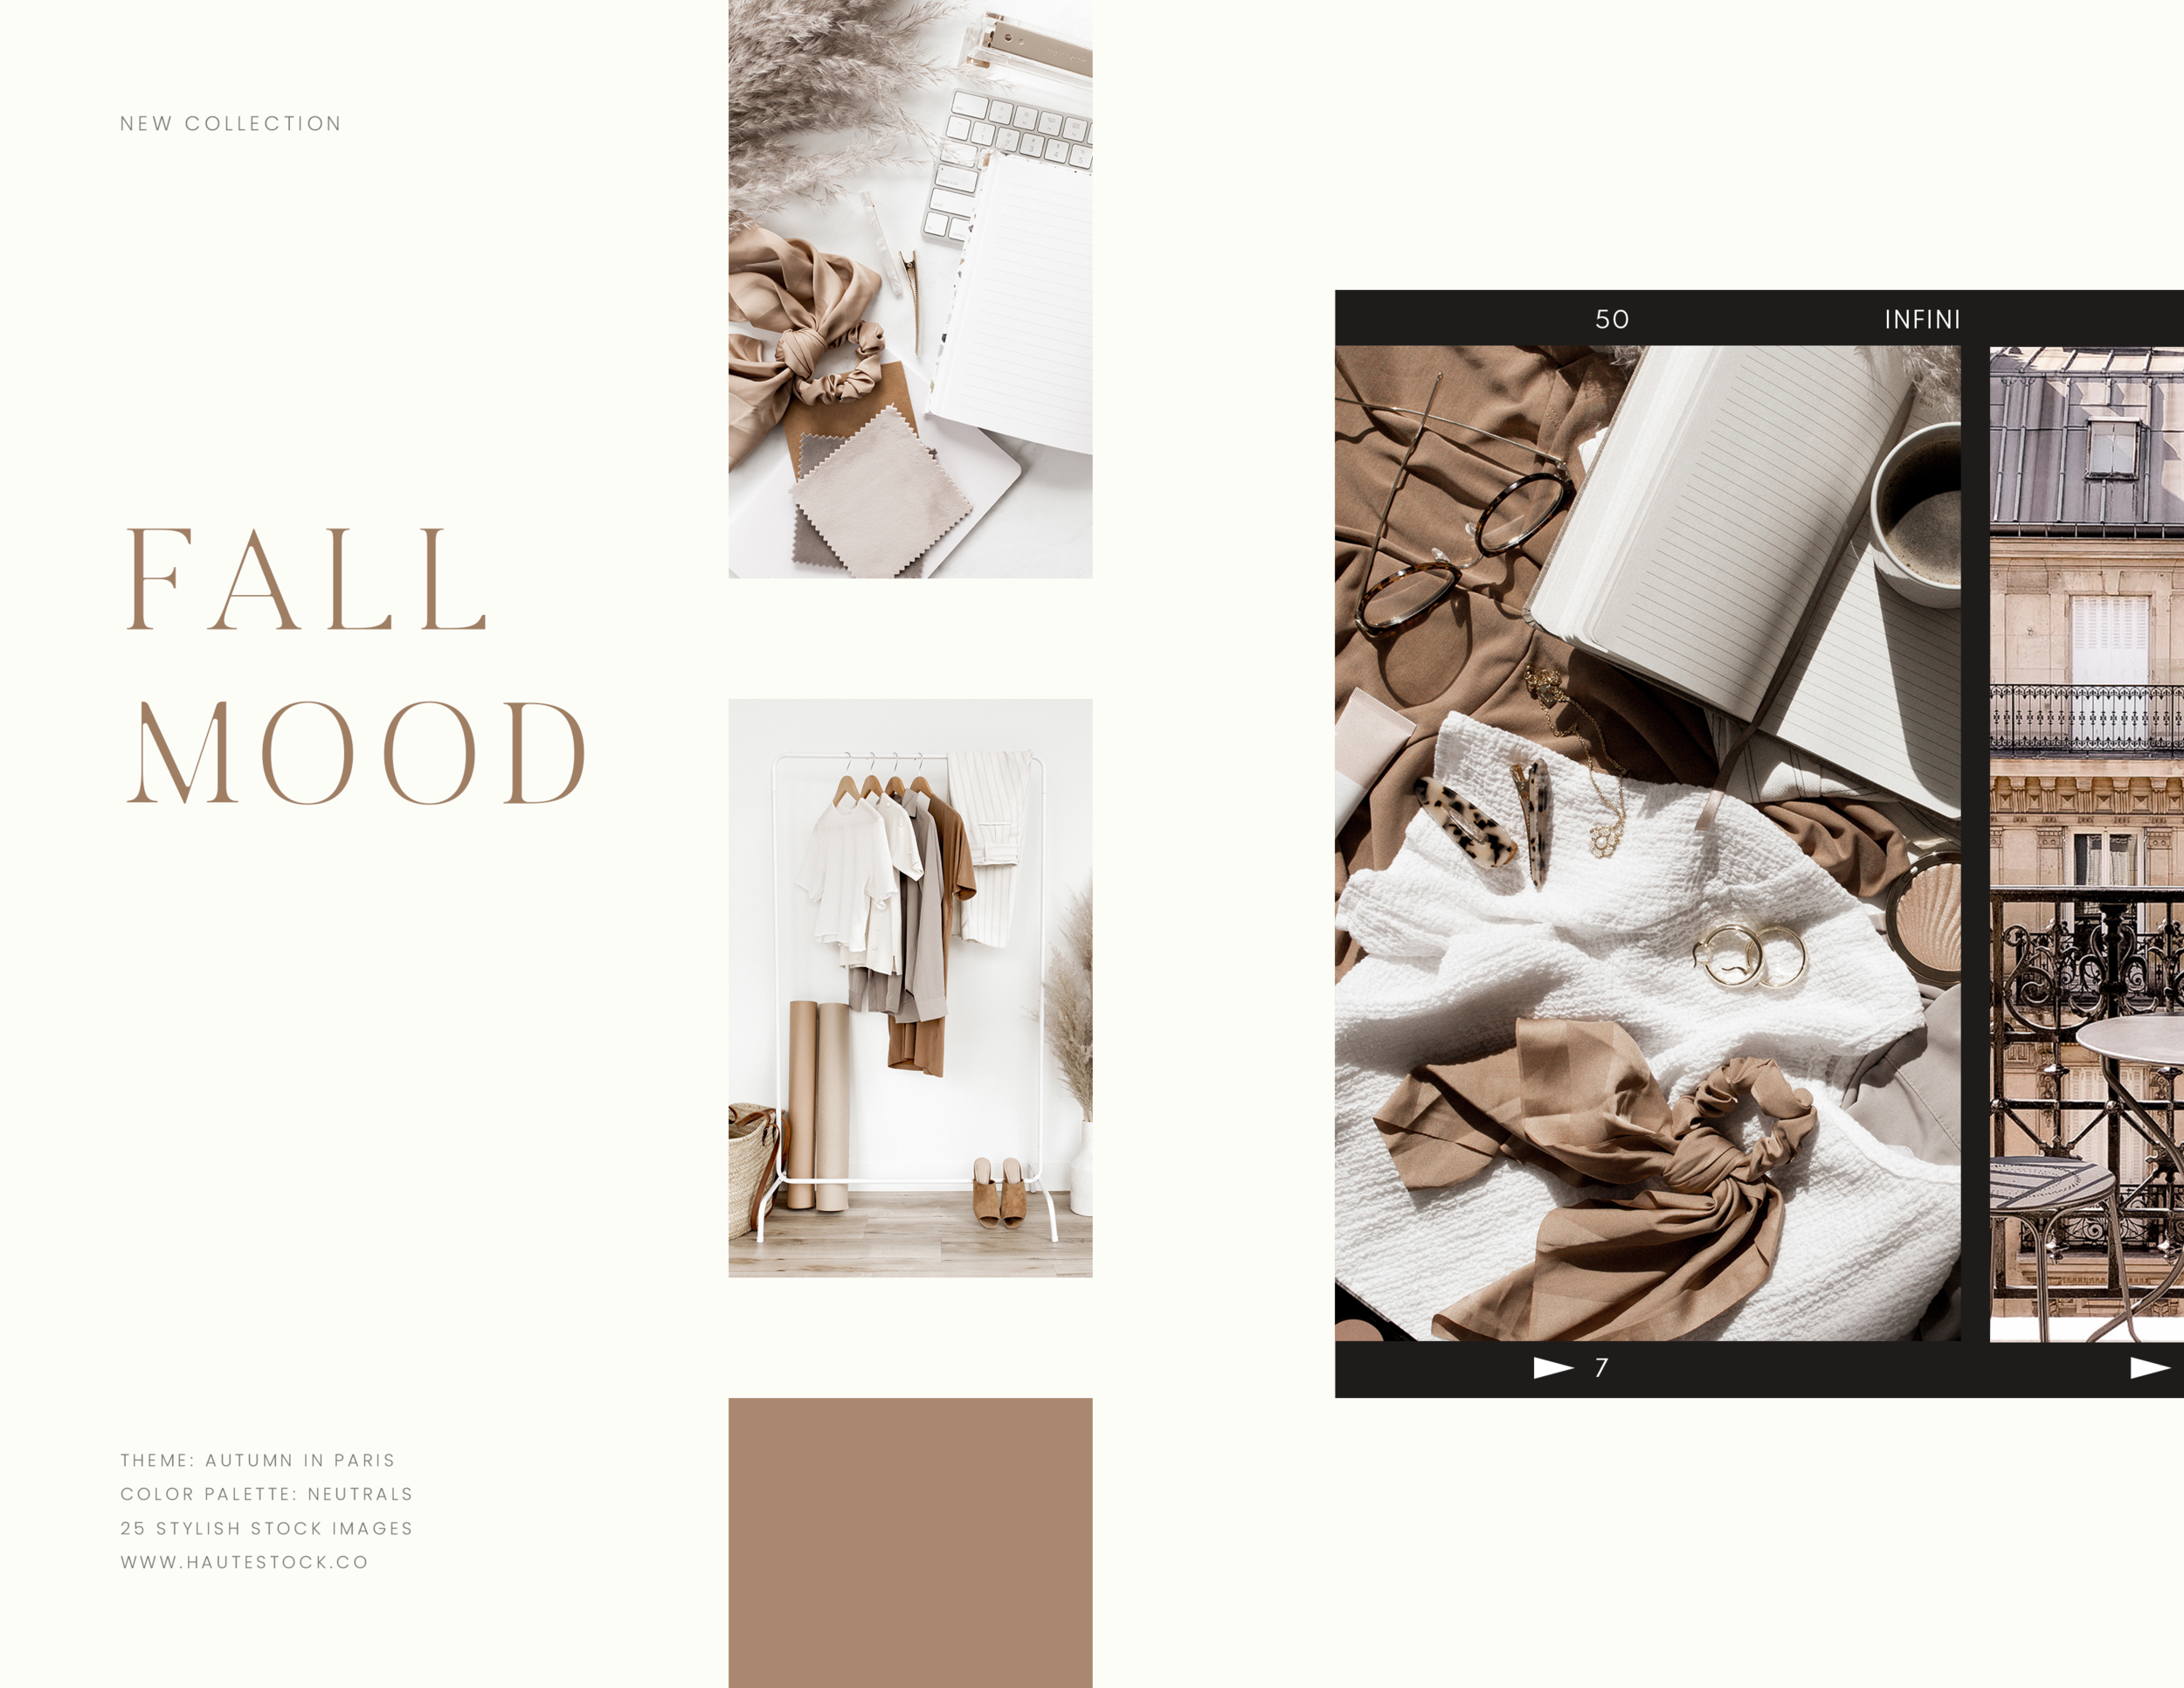 This collection from Haute Stock - Fall Mood is perfect for women business owner's content!